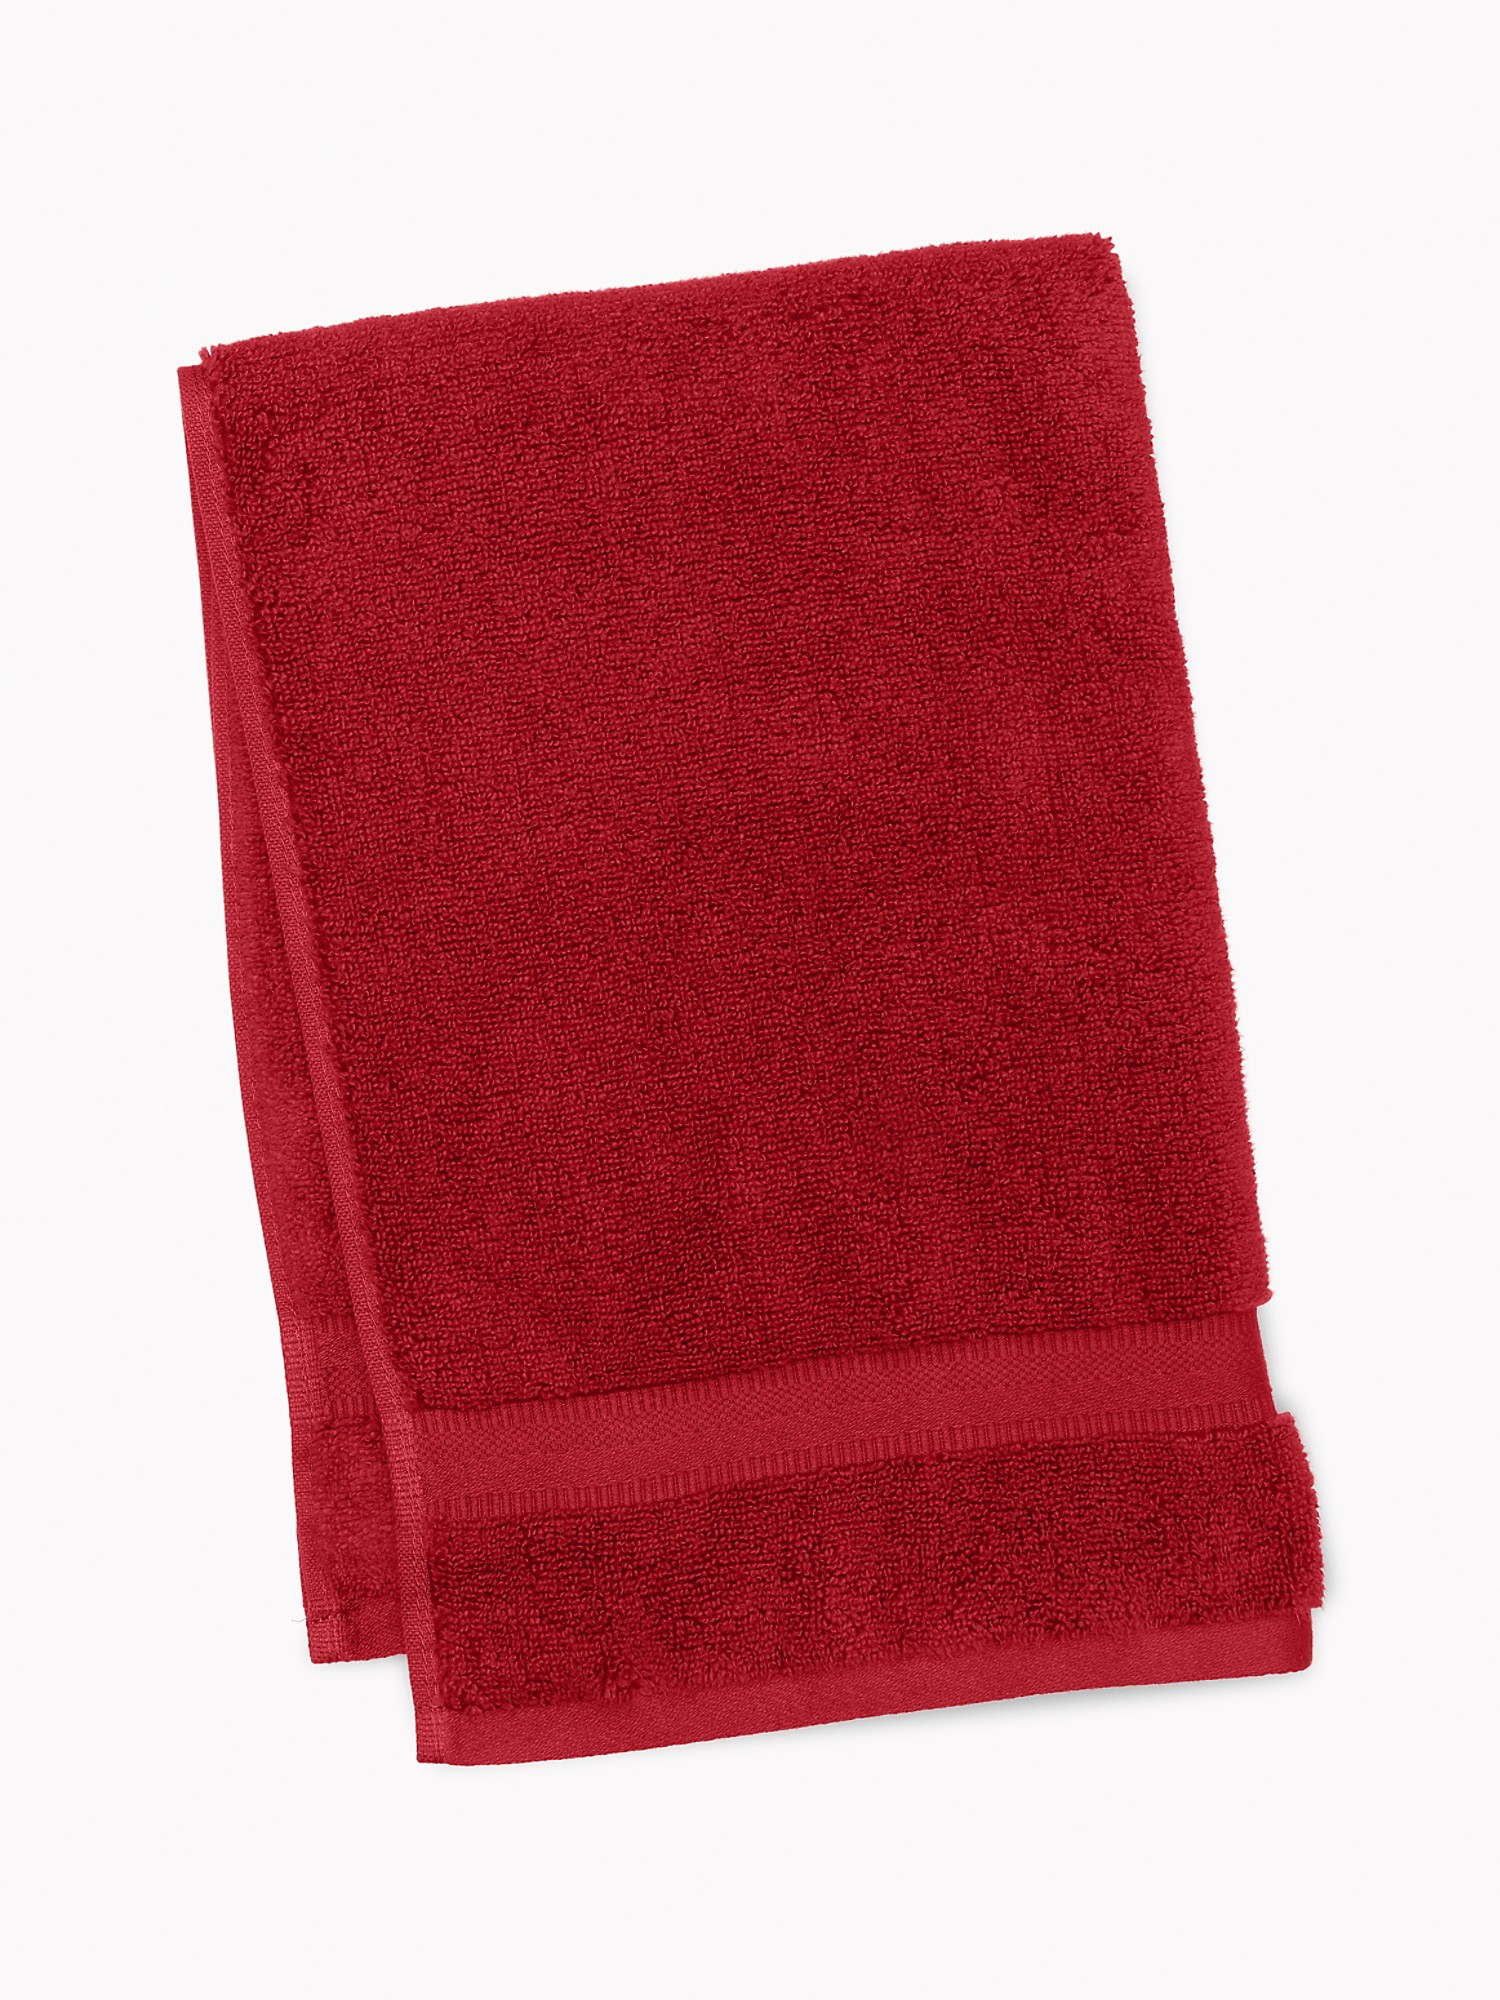 TOMMY HILFIGER Signature Solid Hand Towel in Biking Red